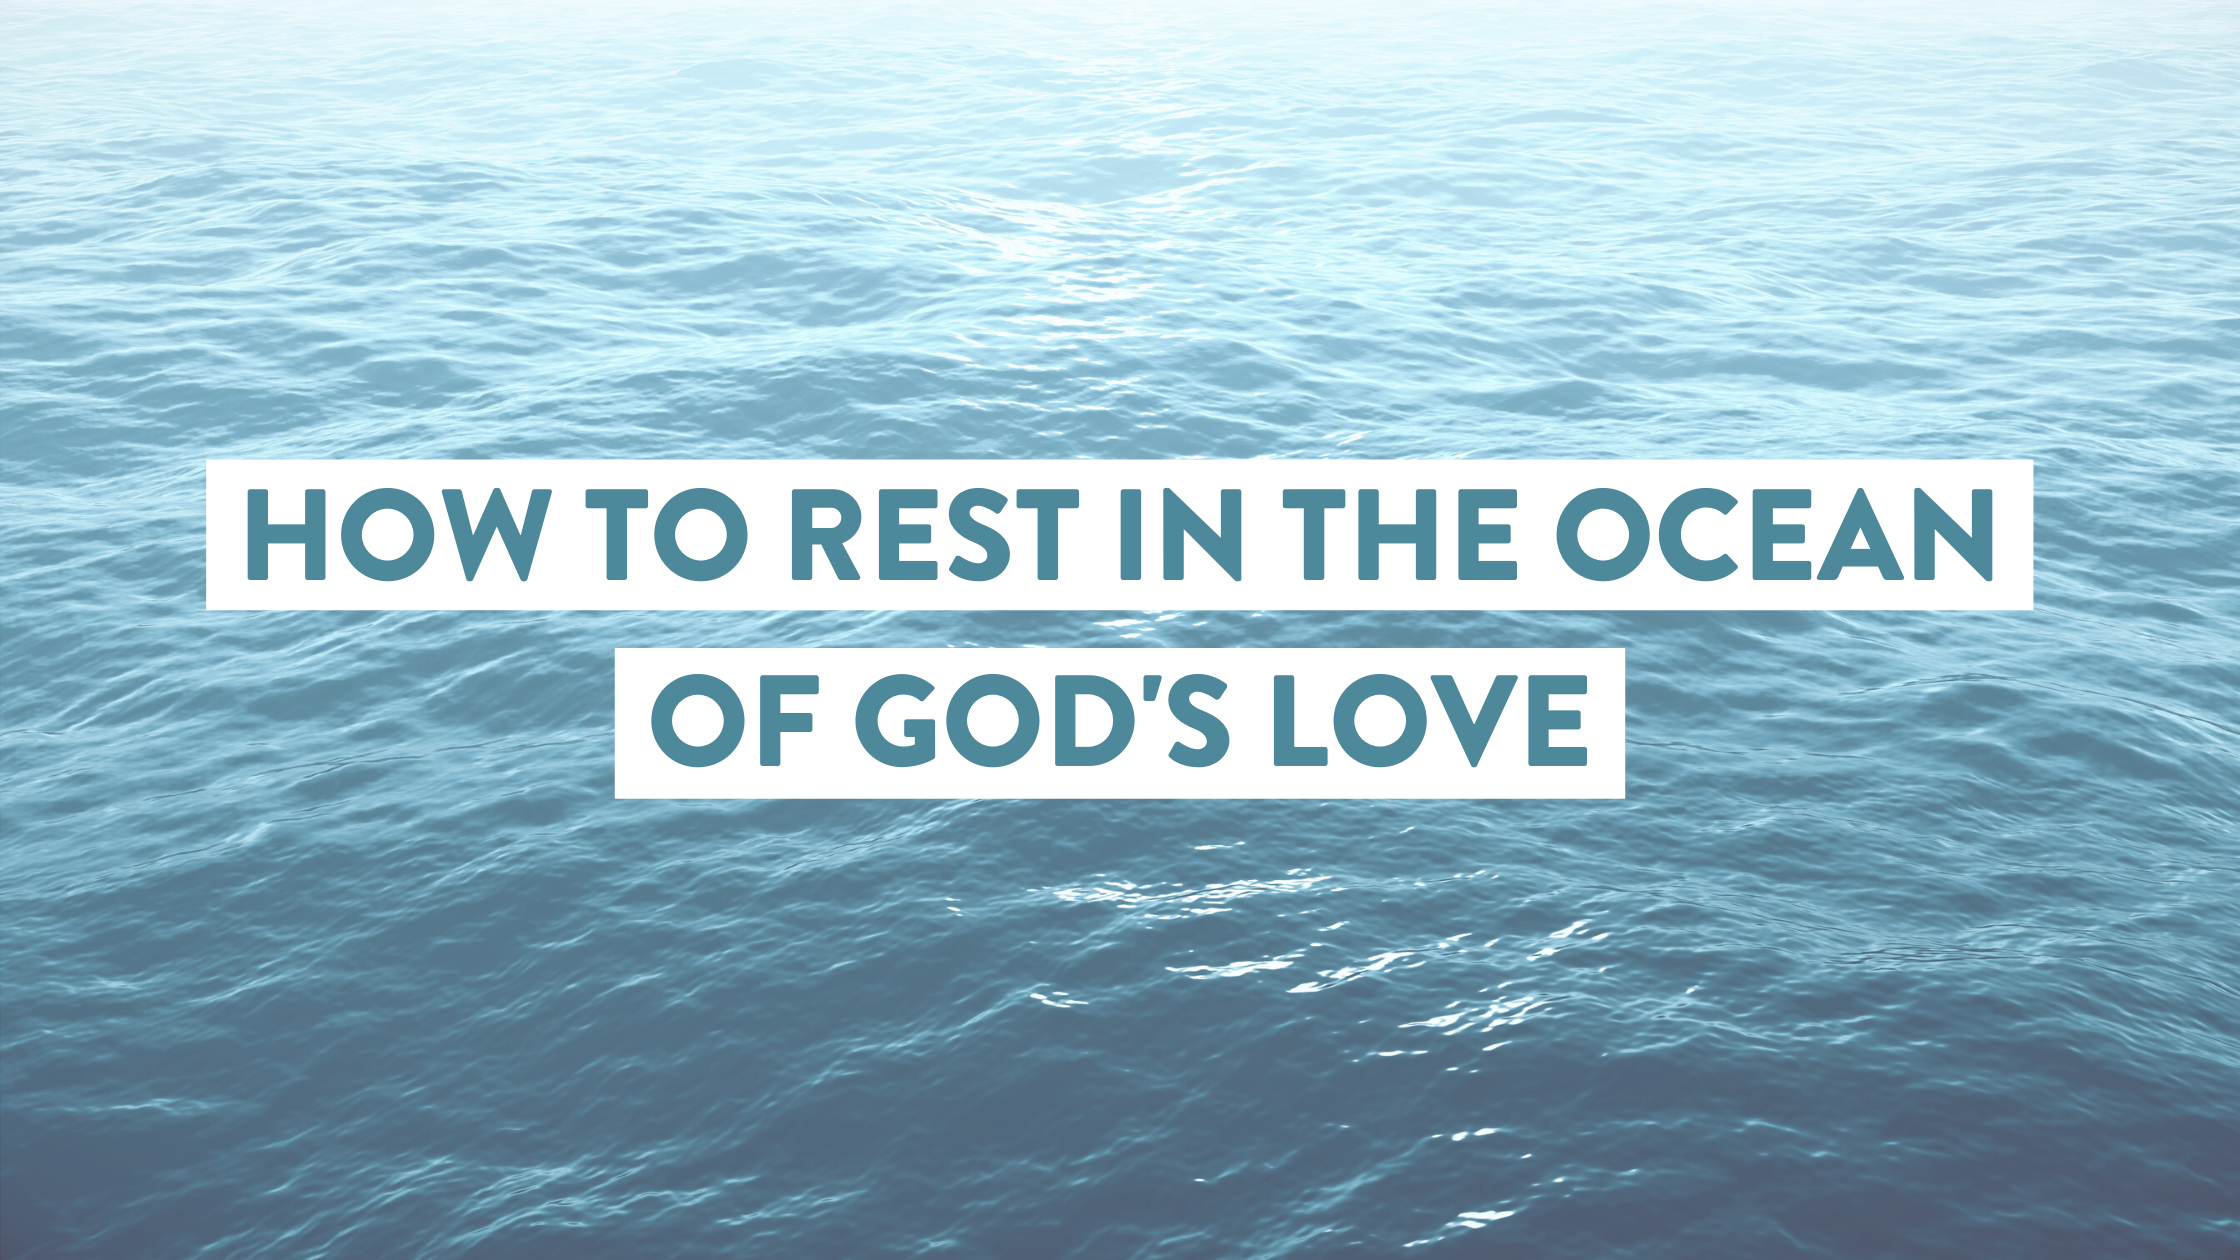 How to Rest in the Ocean of God's Love